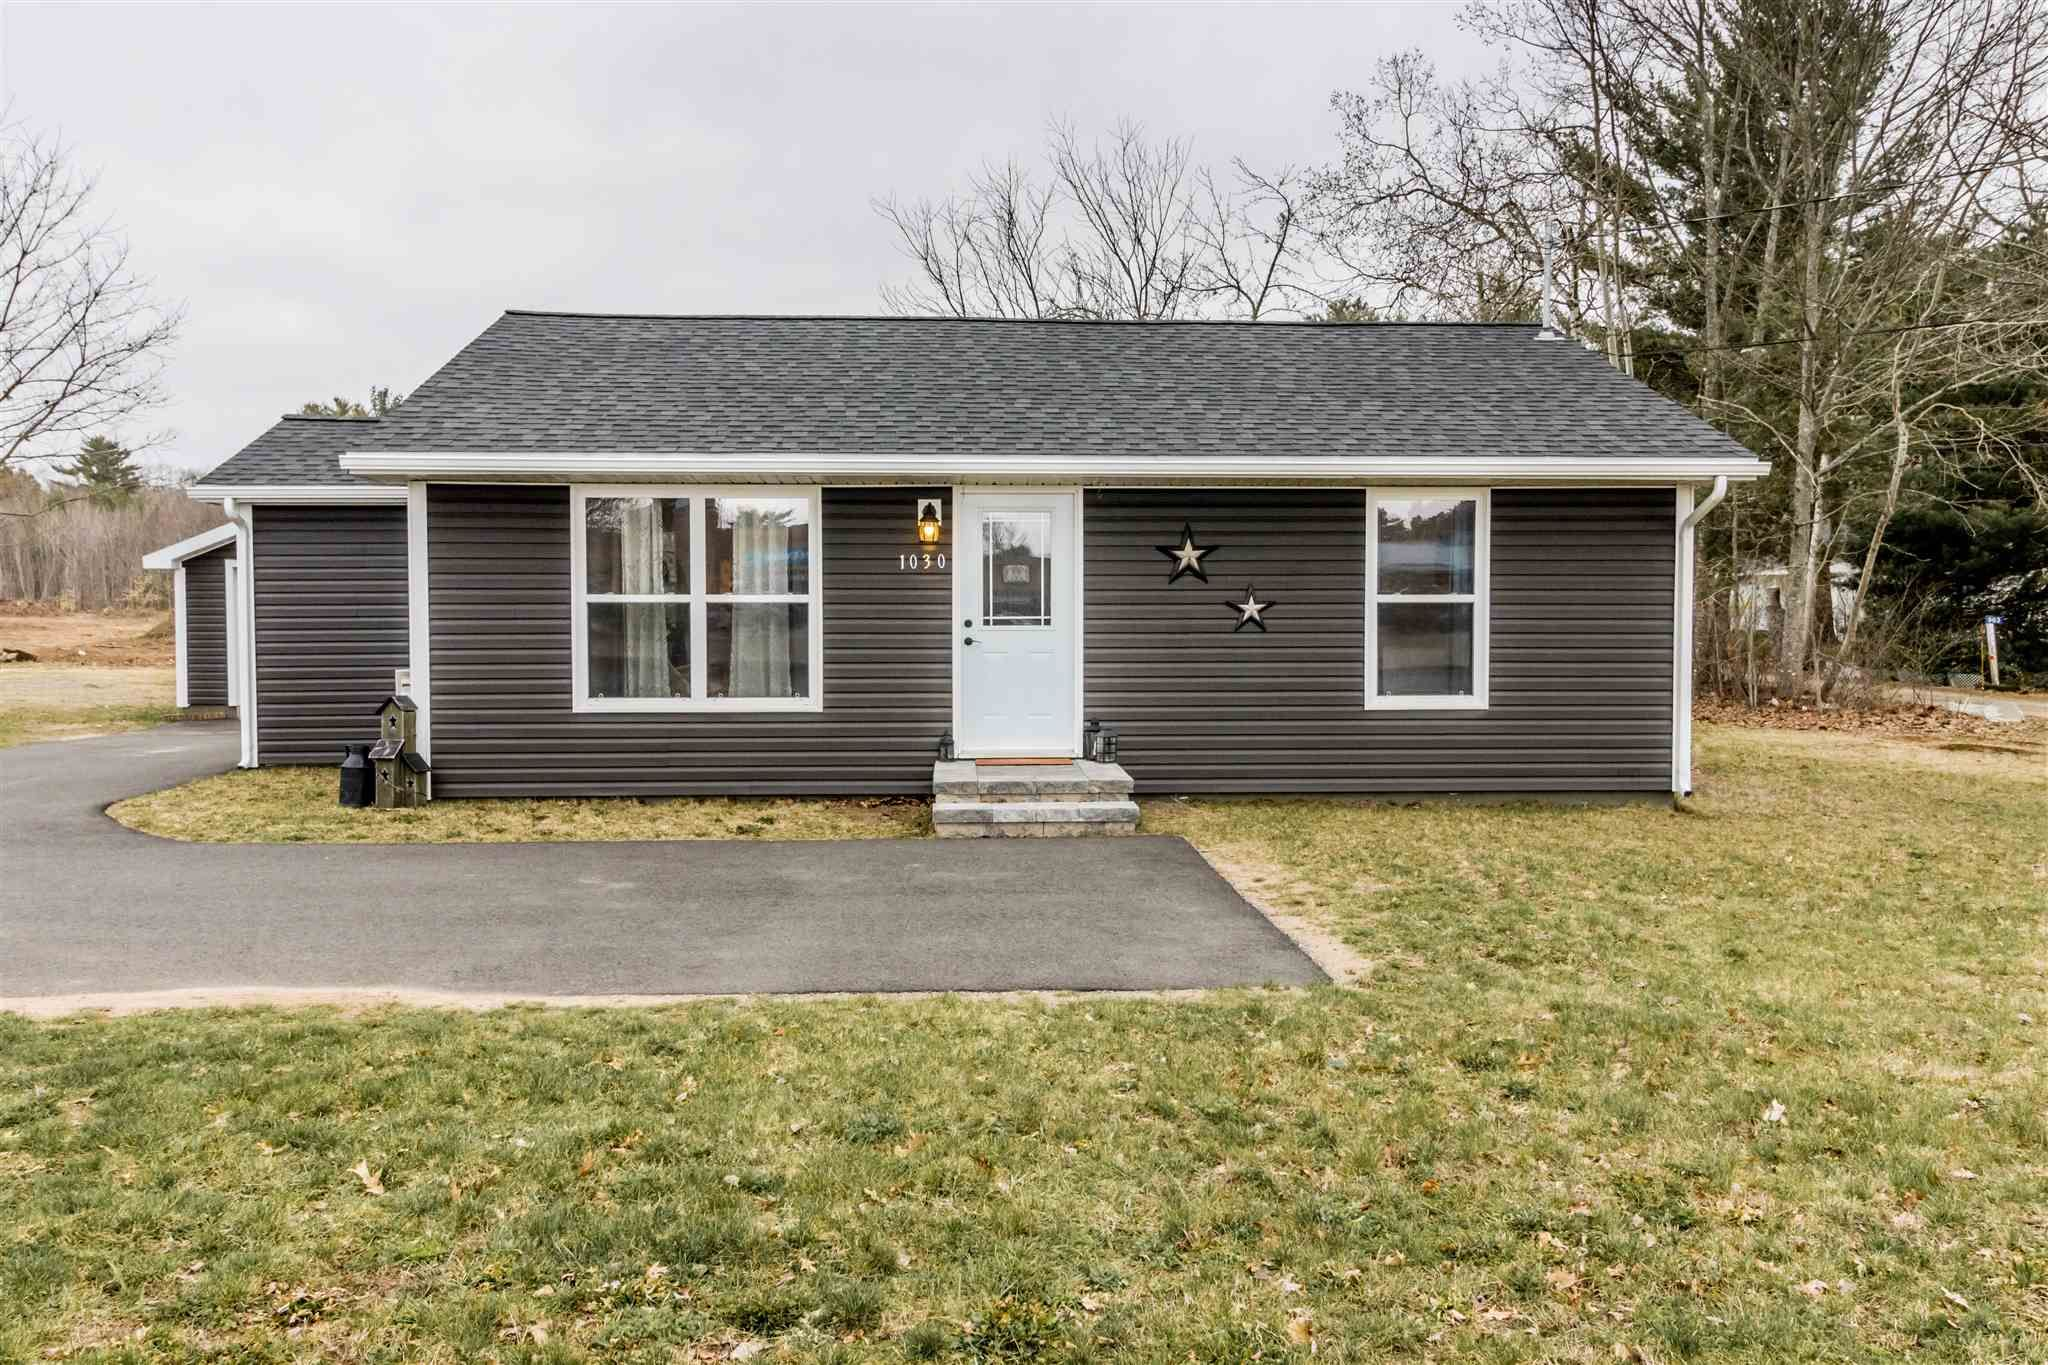 Main Photo: 1030 Central Avenue in Greenwood: 404-Kings County Residential for sale (Annapolis Valley)  : MLS®# 202108921